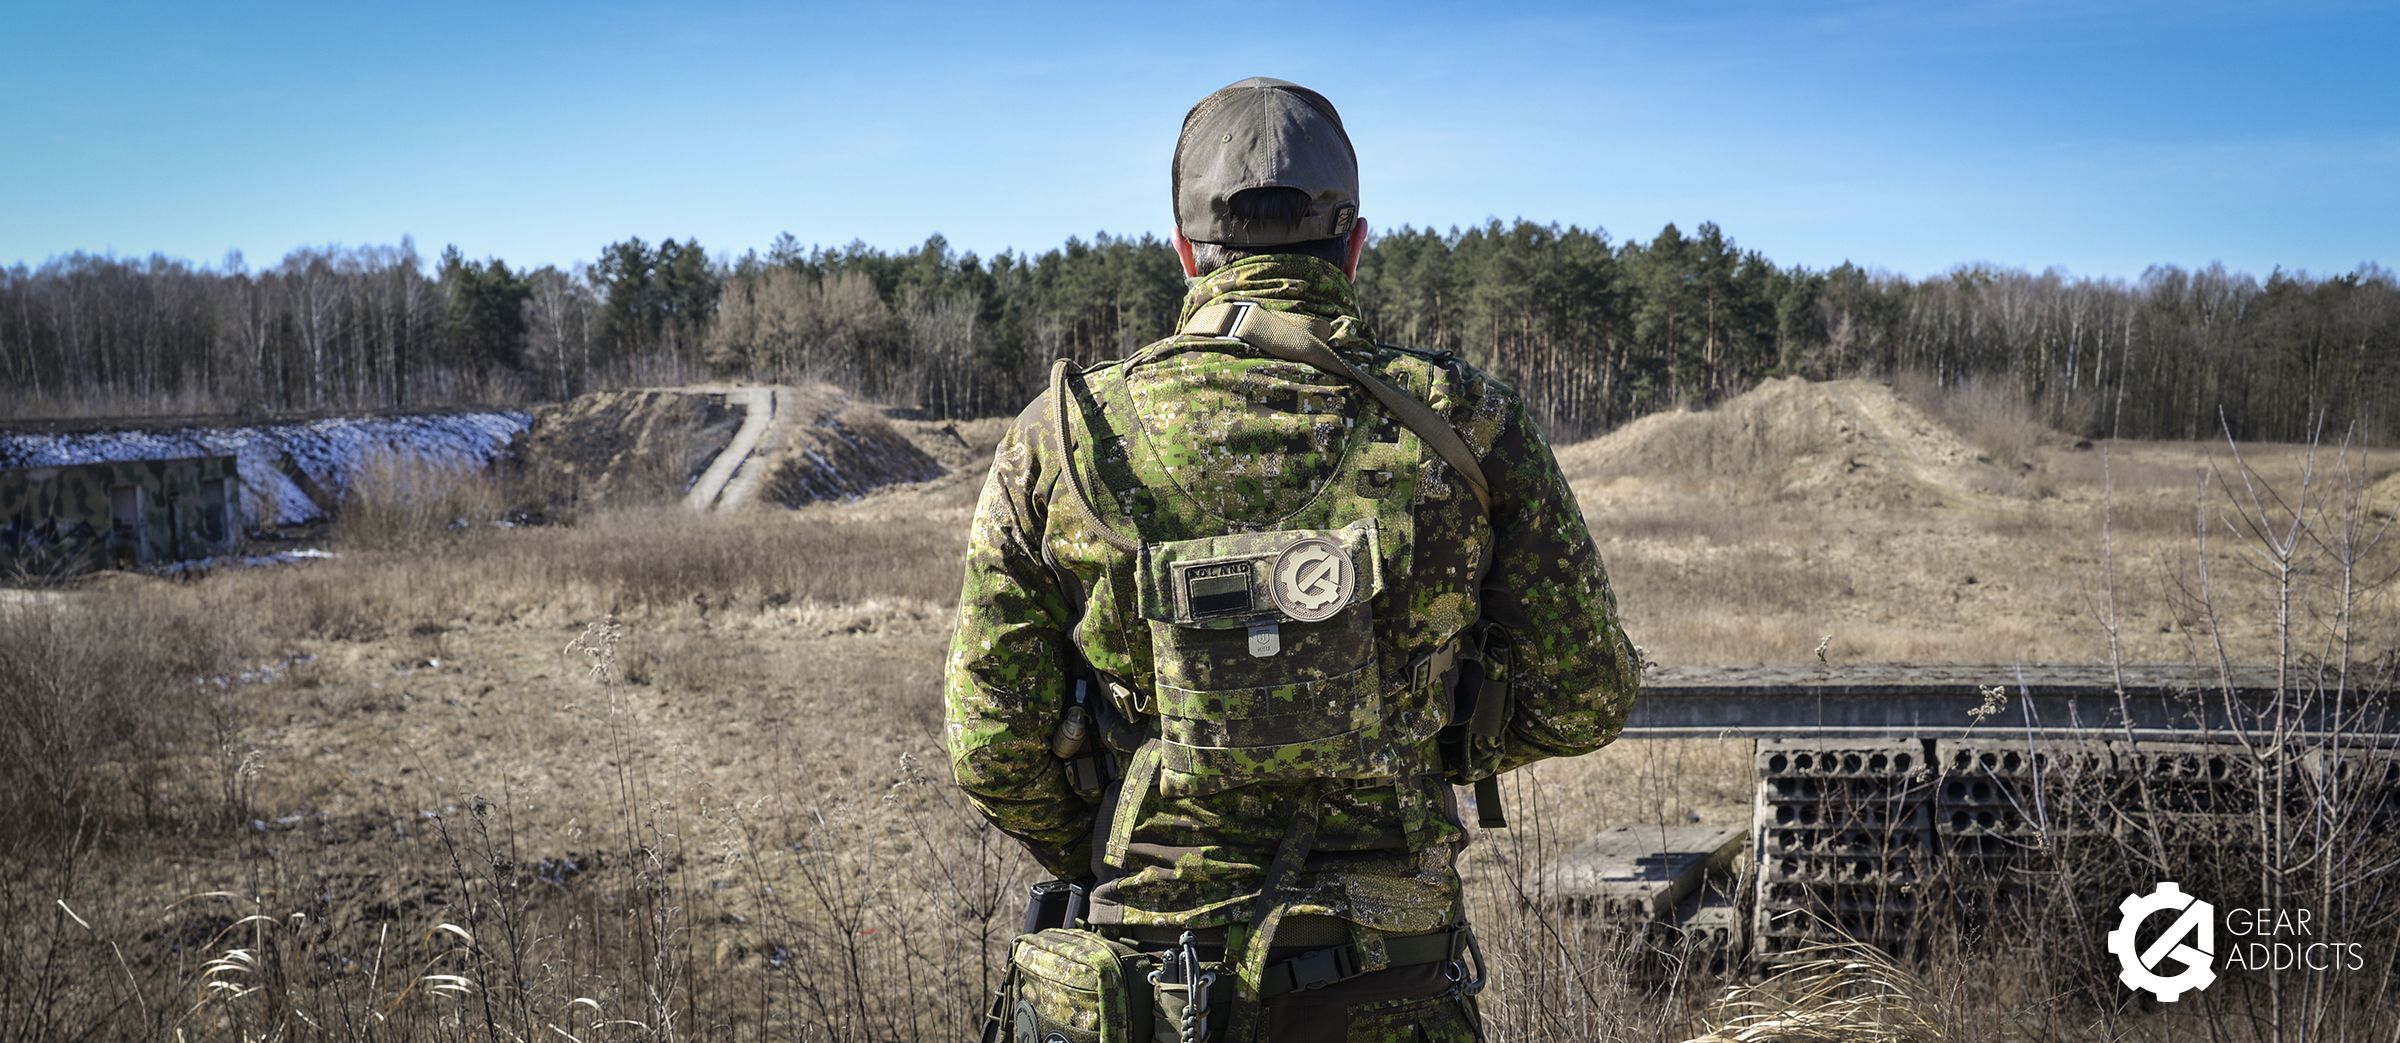 Uf Pro Hunter Sweater Gear Addicts Gears That Look I Sweaters